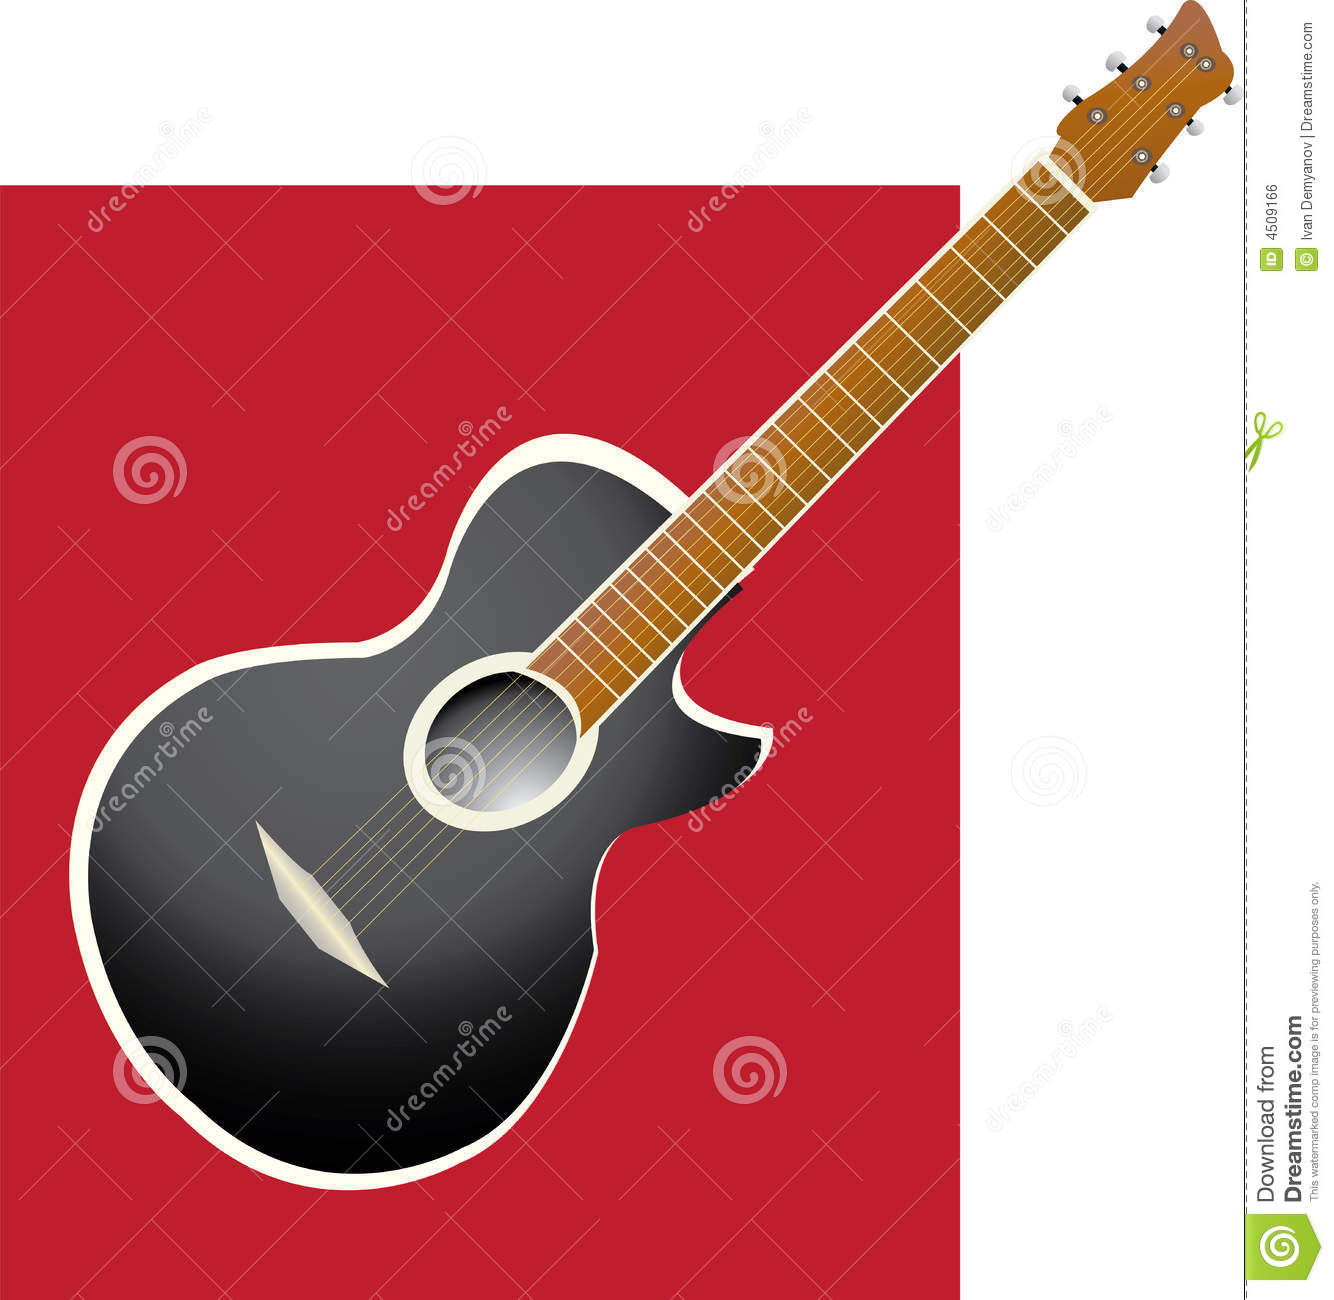 Guitar Abstract Royalty Free Stock Image - Image: 4509166